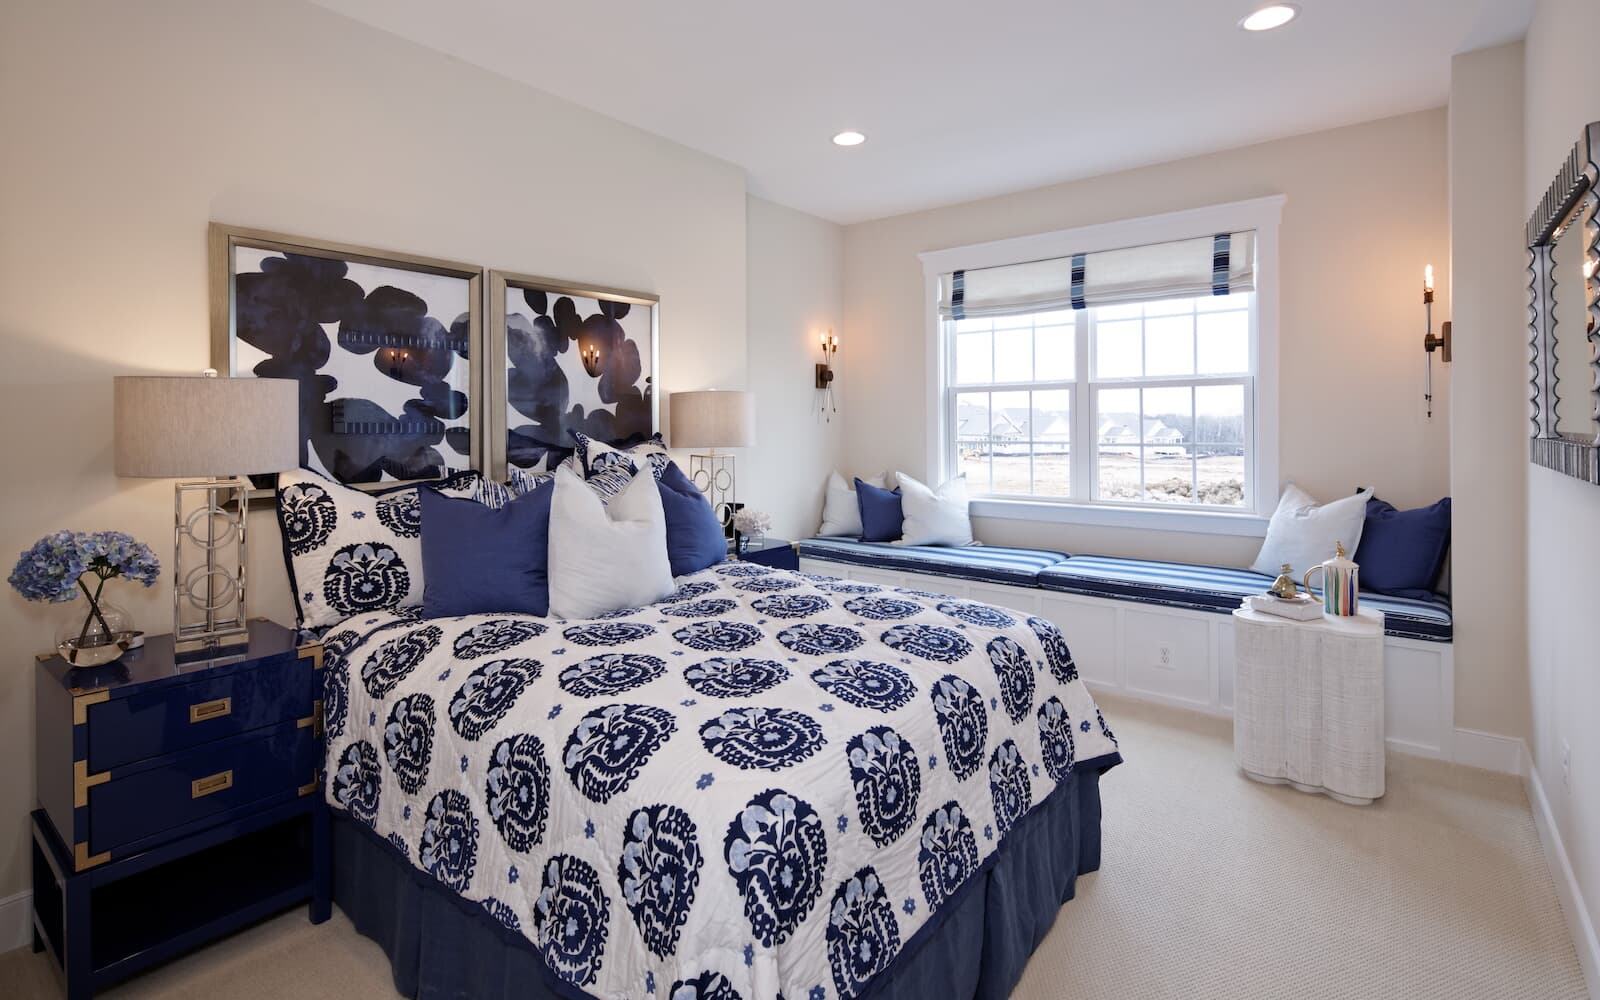 Kensington-bedroom2-single-family-home-bristow-va-avendale-brookfield-residential